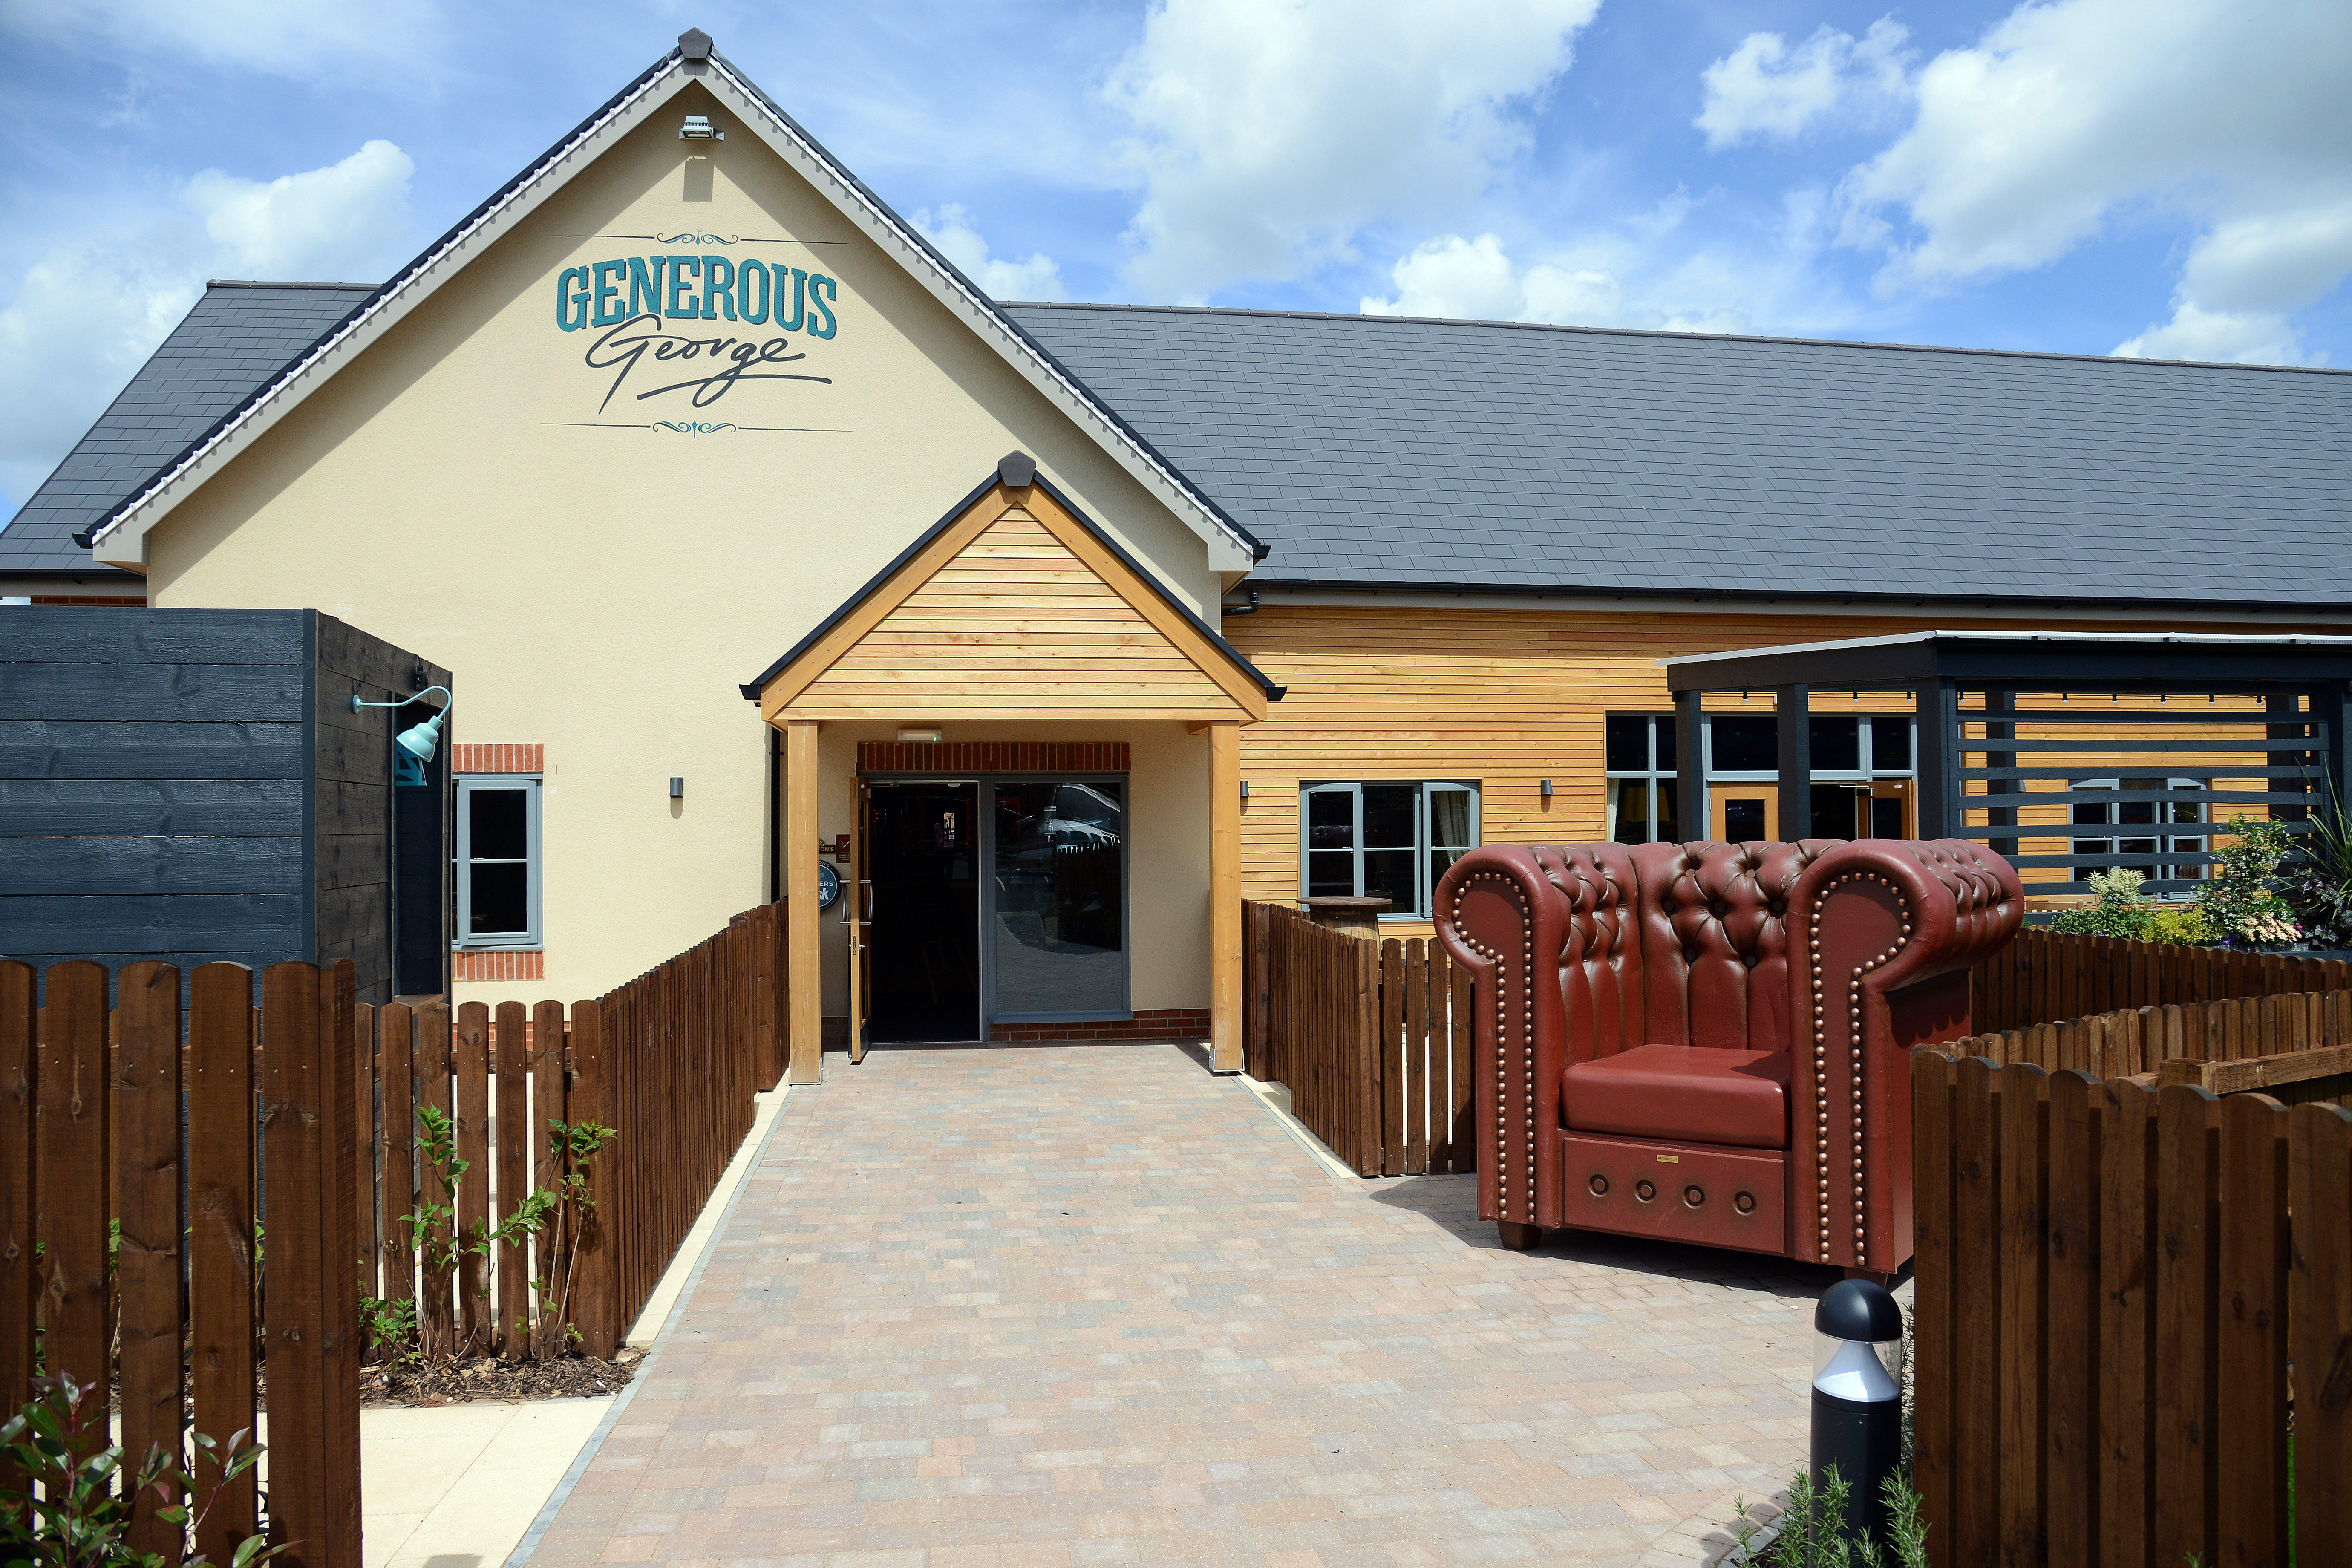 Tuck & Tanner - Top Valley Bullwell, Nottinghamshire NG5 9LA - 01158 246970 | ShowMeLocal.com